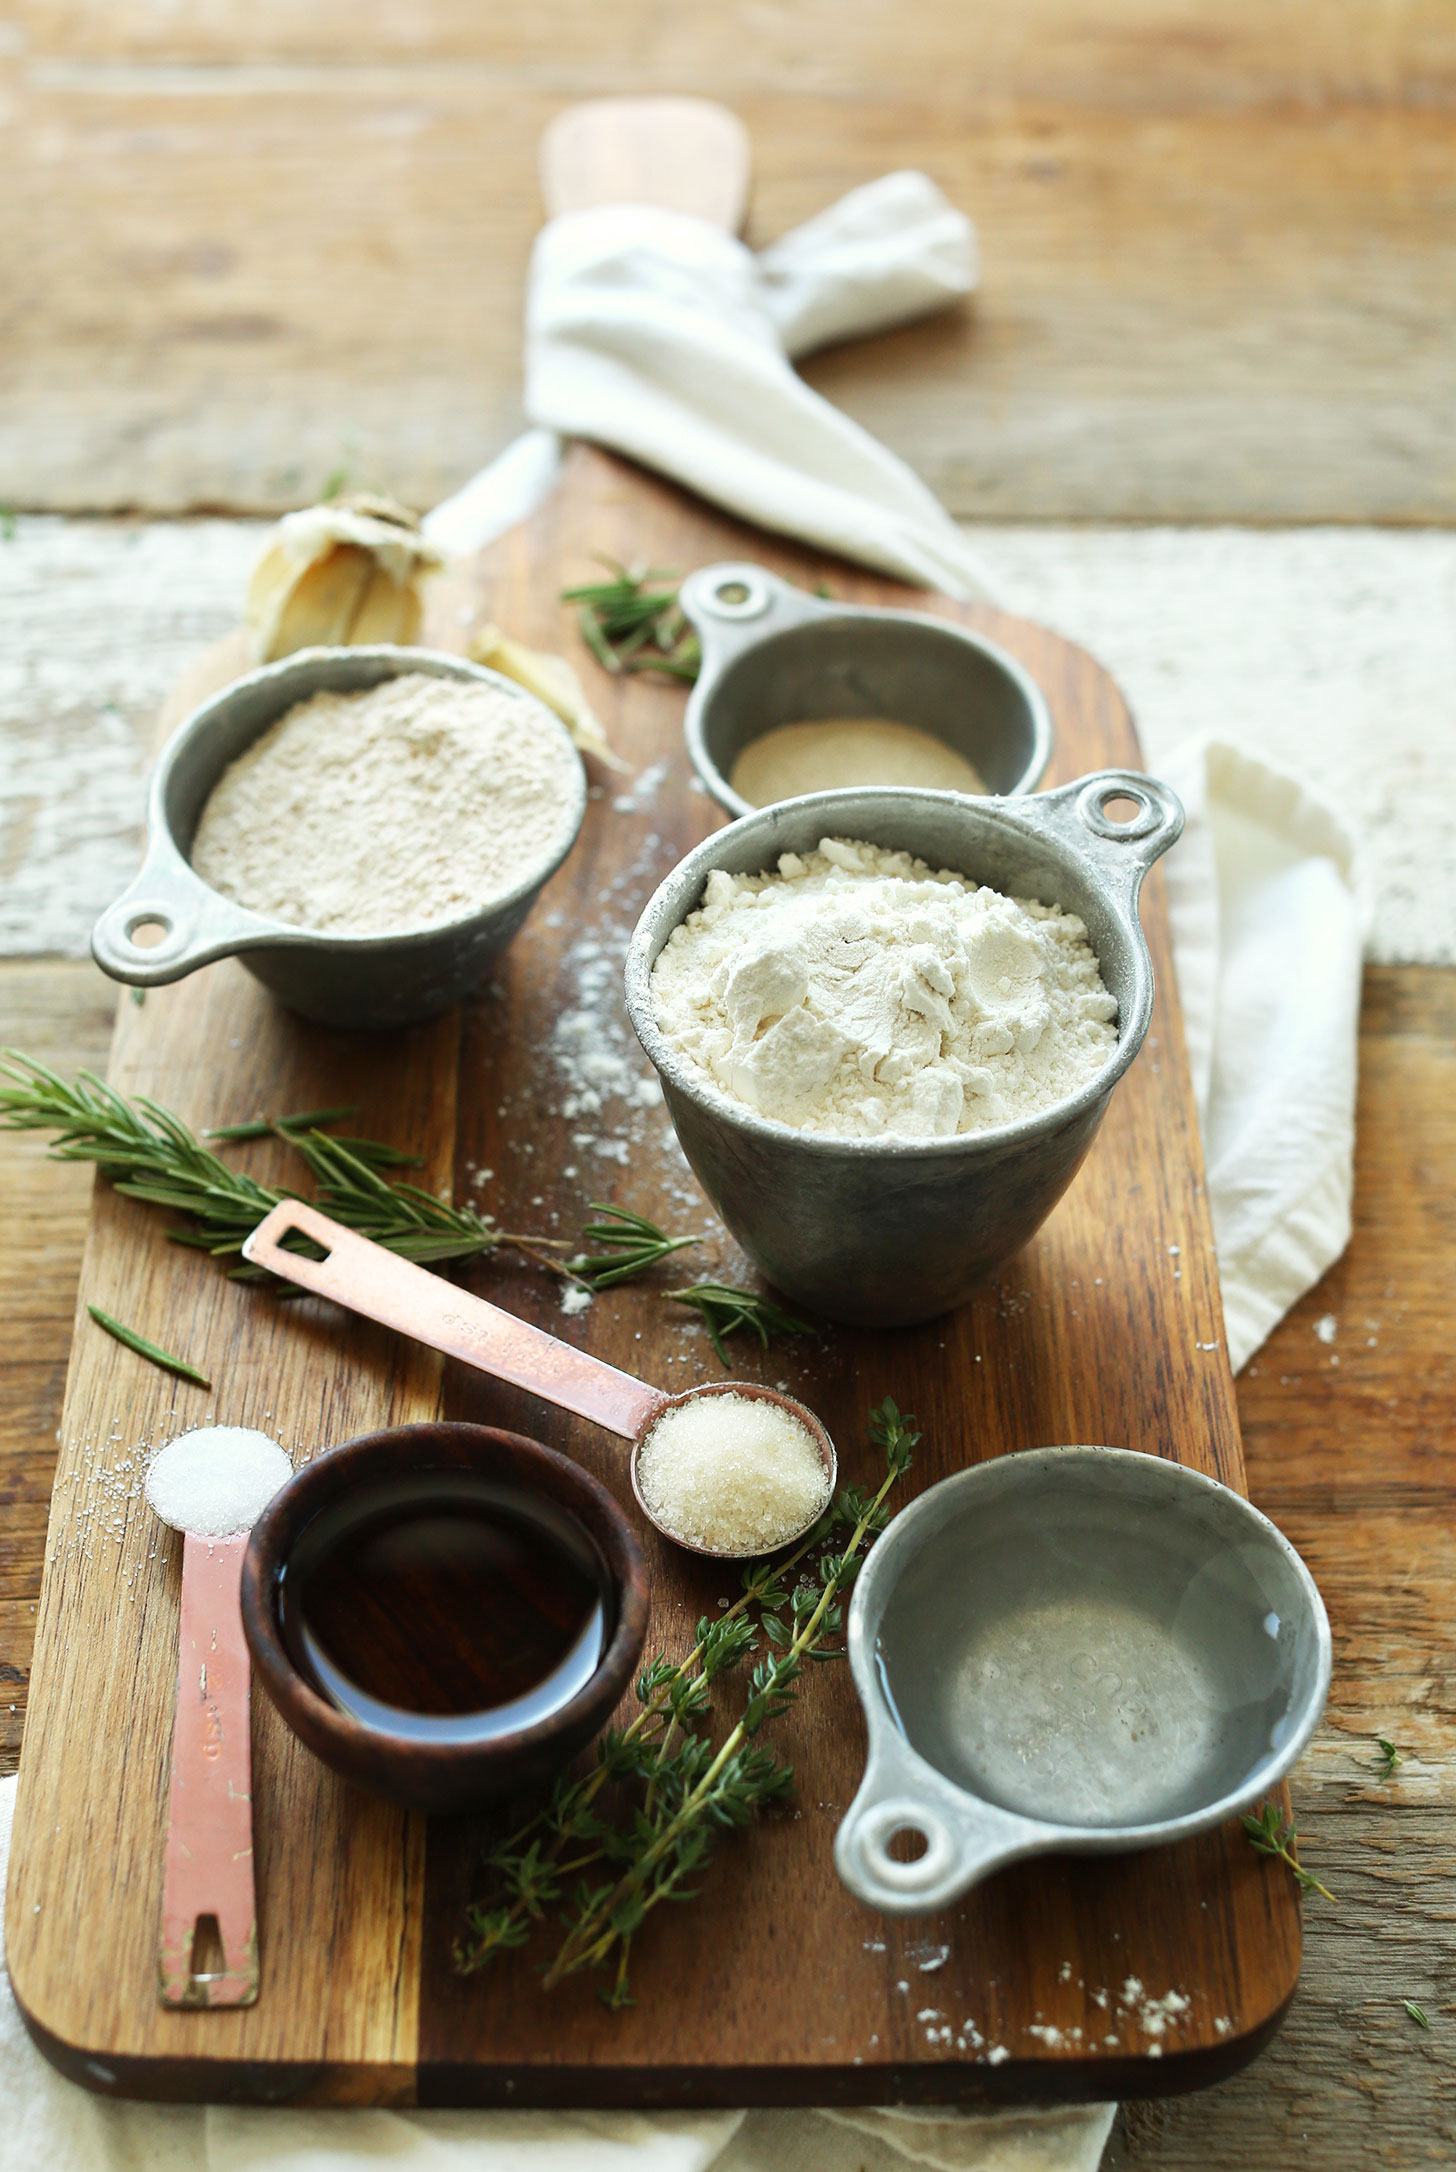 Ingredients for making healthy vegan flatbread wraps with spelt flour